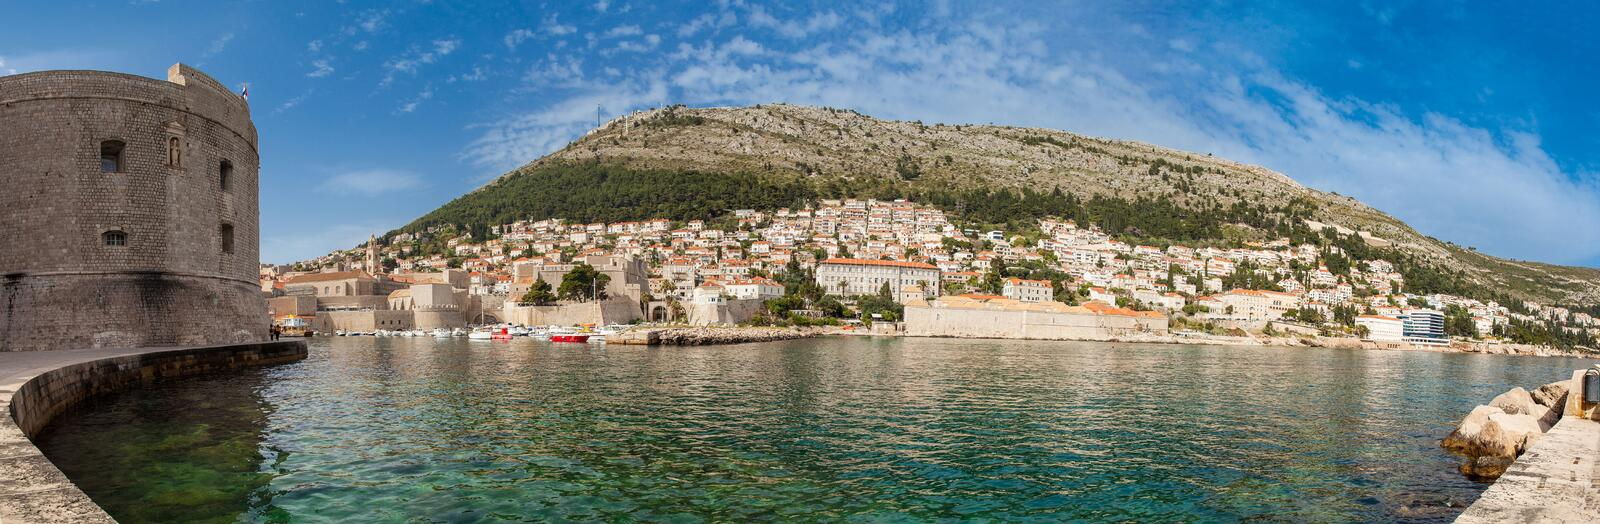 Mediterranean panorama of Dubrovnik old city including the old port, city walls and fortifications. Mediterranean panorama of the beautiful Dubrovnik old city royalty free stock photography